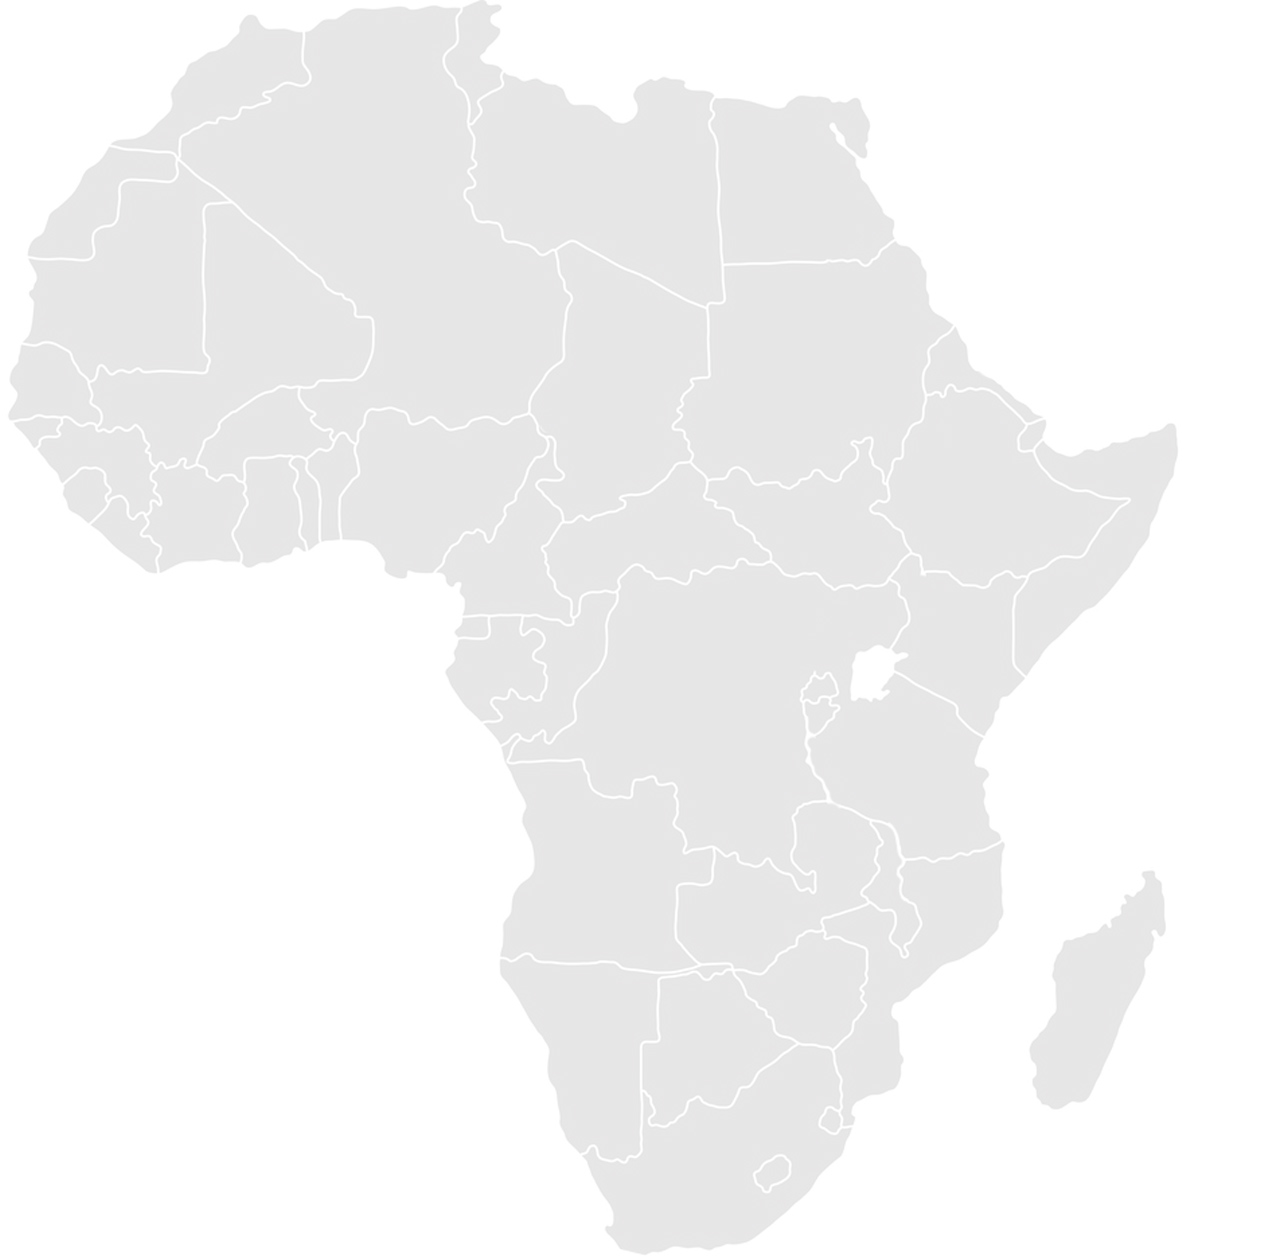 Gray map of Africa